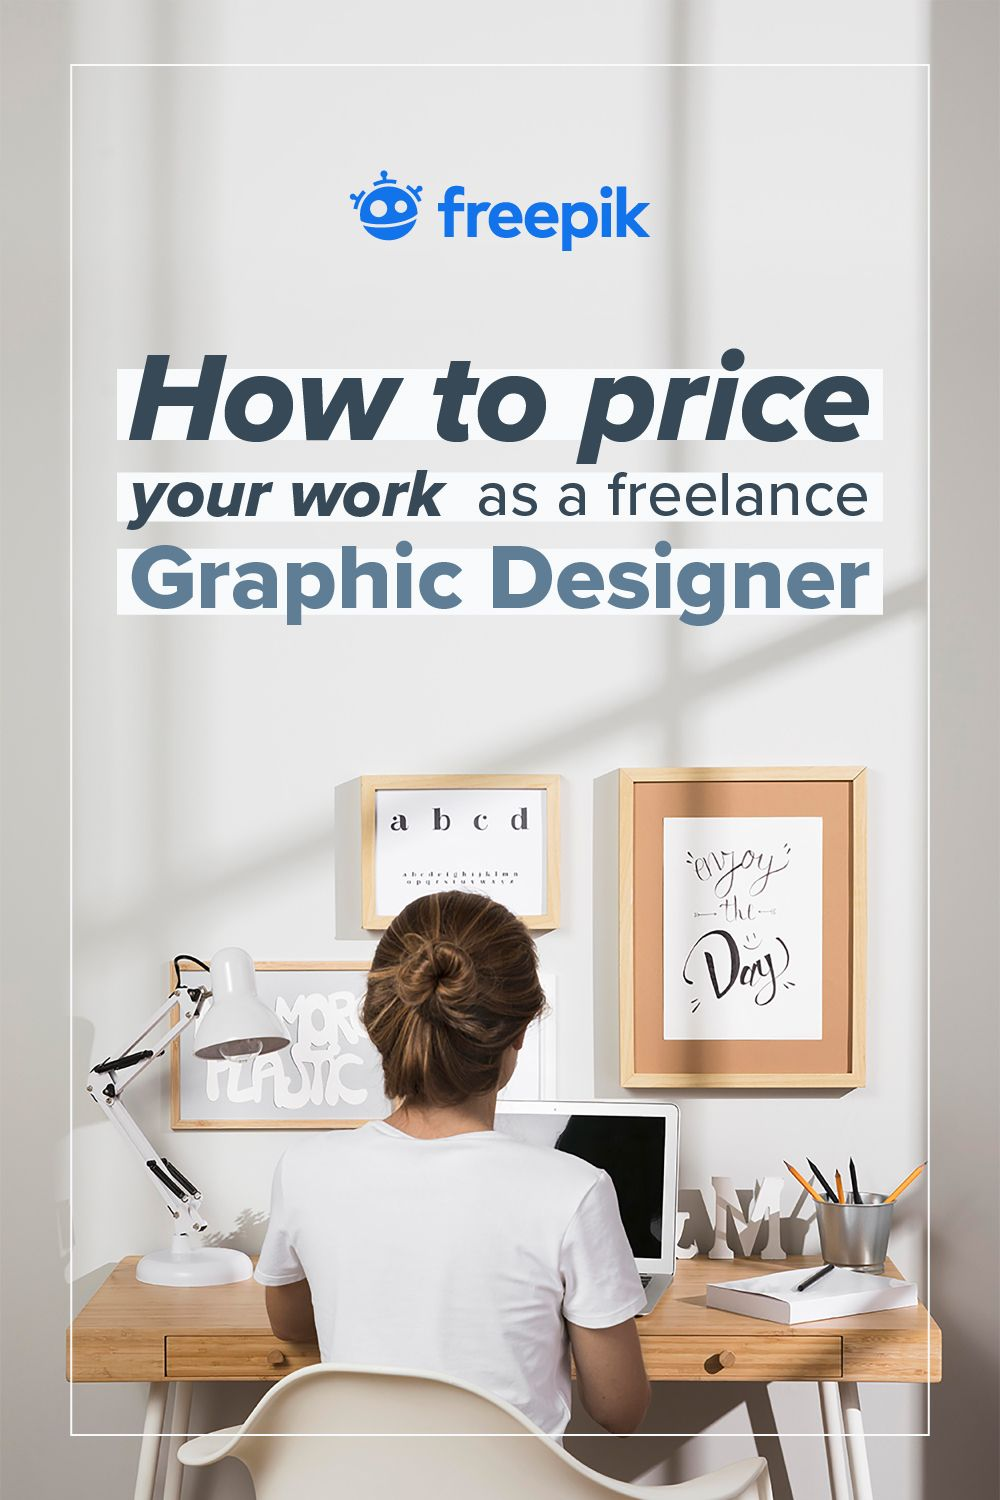 How To Price Your Work As A Freelance Graphic Designer Freelance Graphic Design Graphic Design Business Graphic Design Help